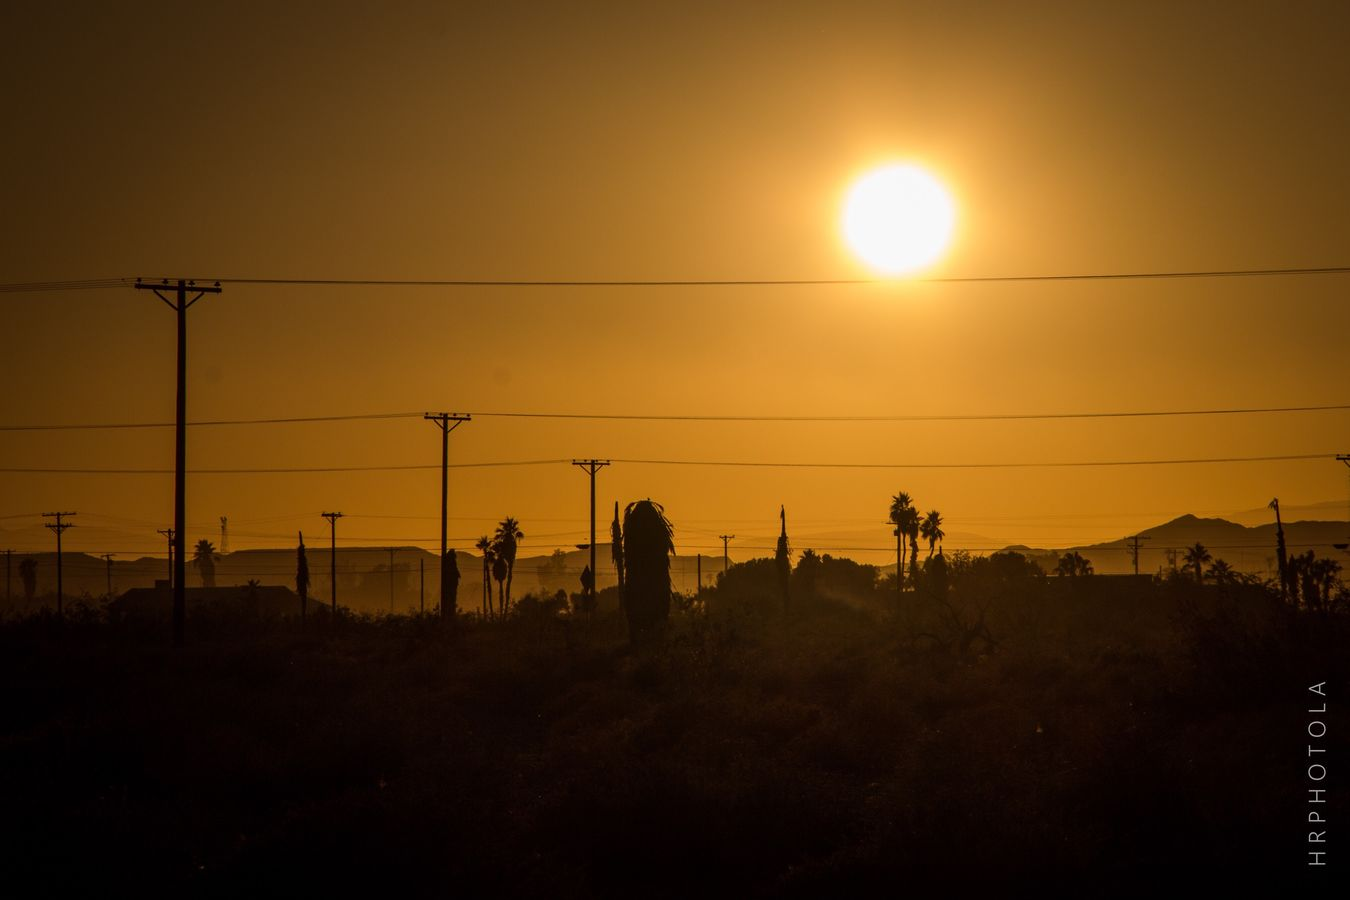 Sunset Yellow Clearsky Imperial Valley Riversidecounty Desert Saltonsea Deserted Serenity Peaceful Beautifulview Mountain